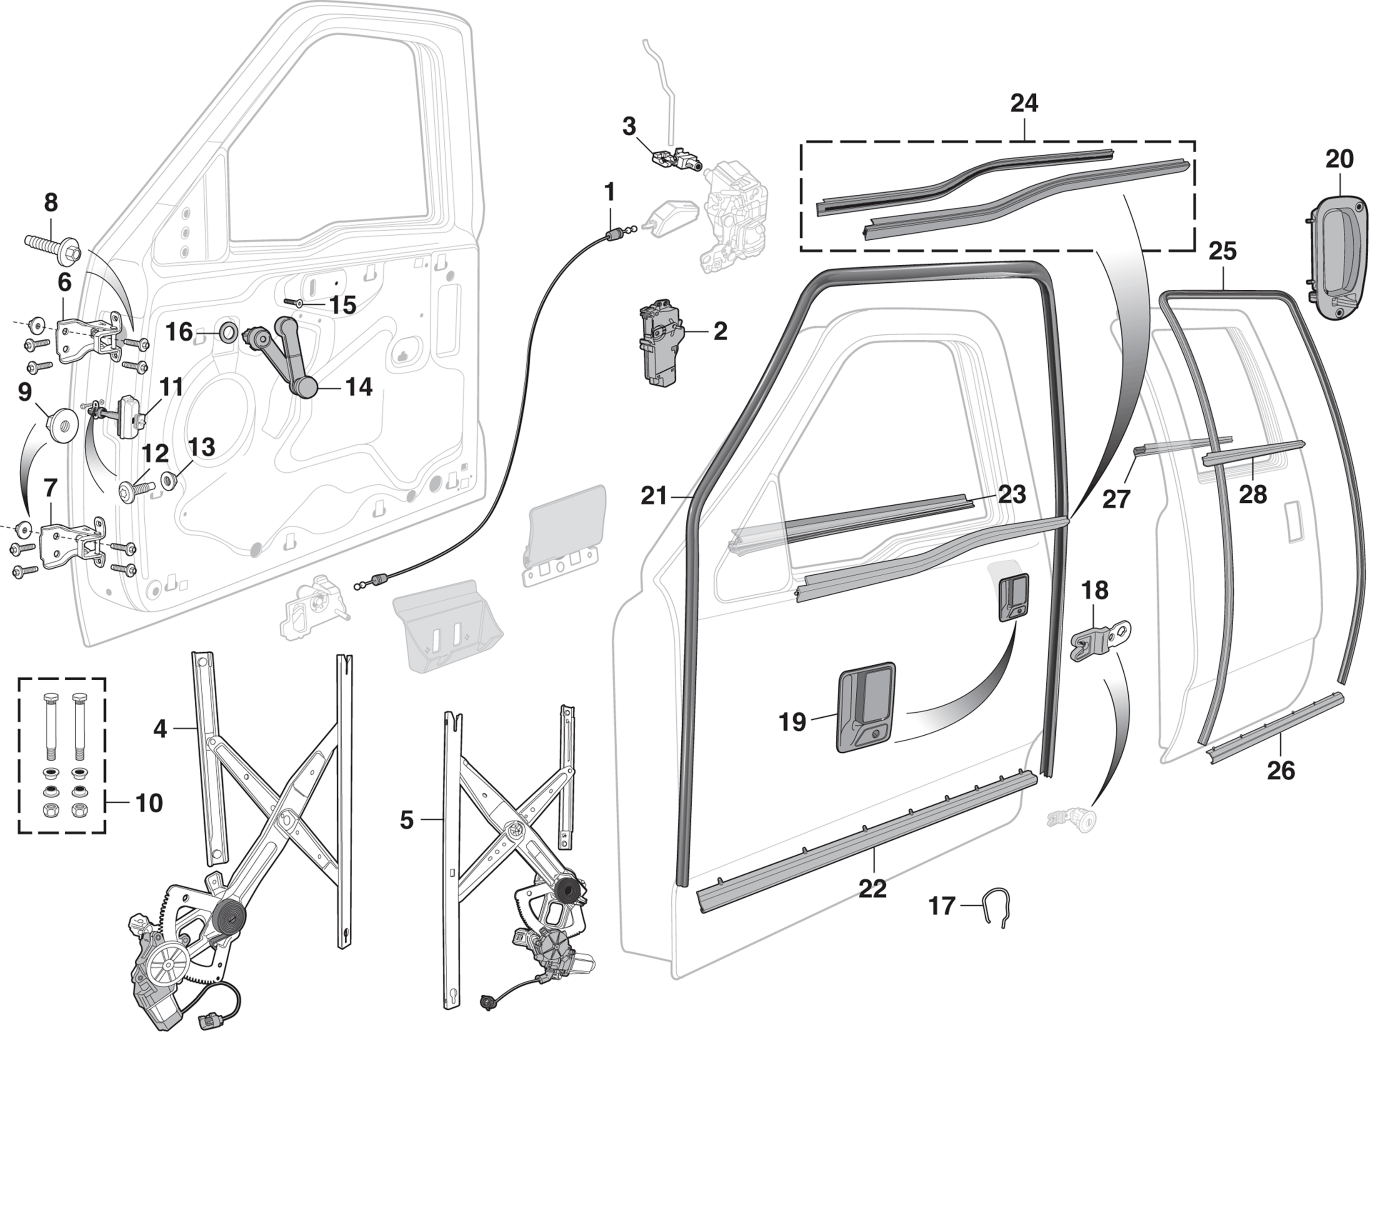 Motors Left Driver Upper and Lower Rear Side Latches Assembly ...